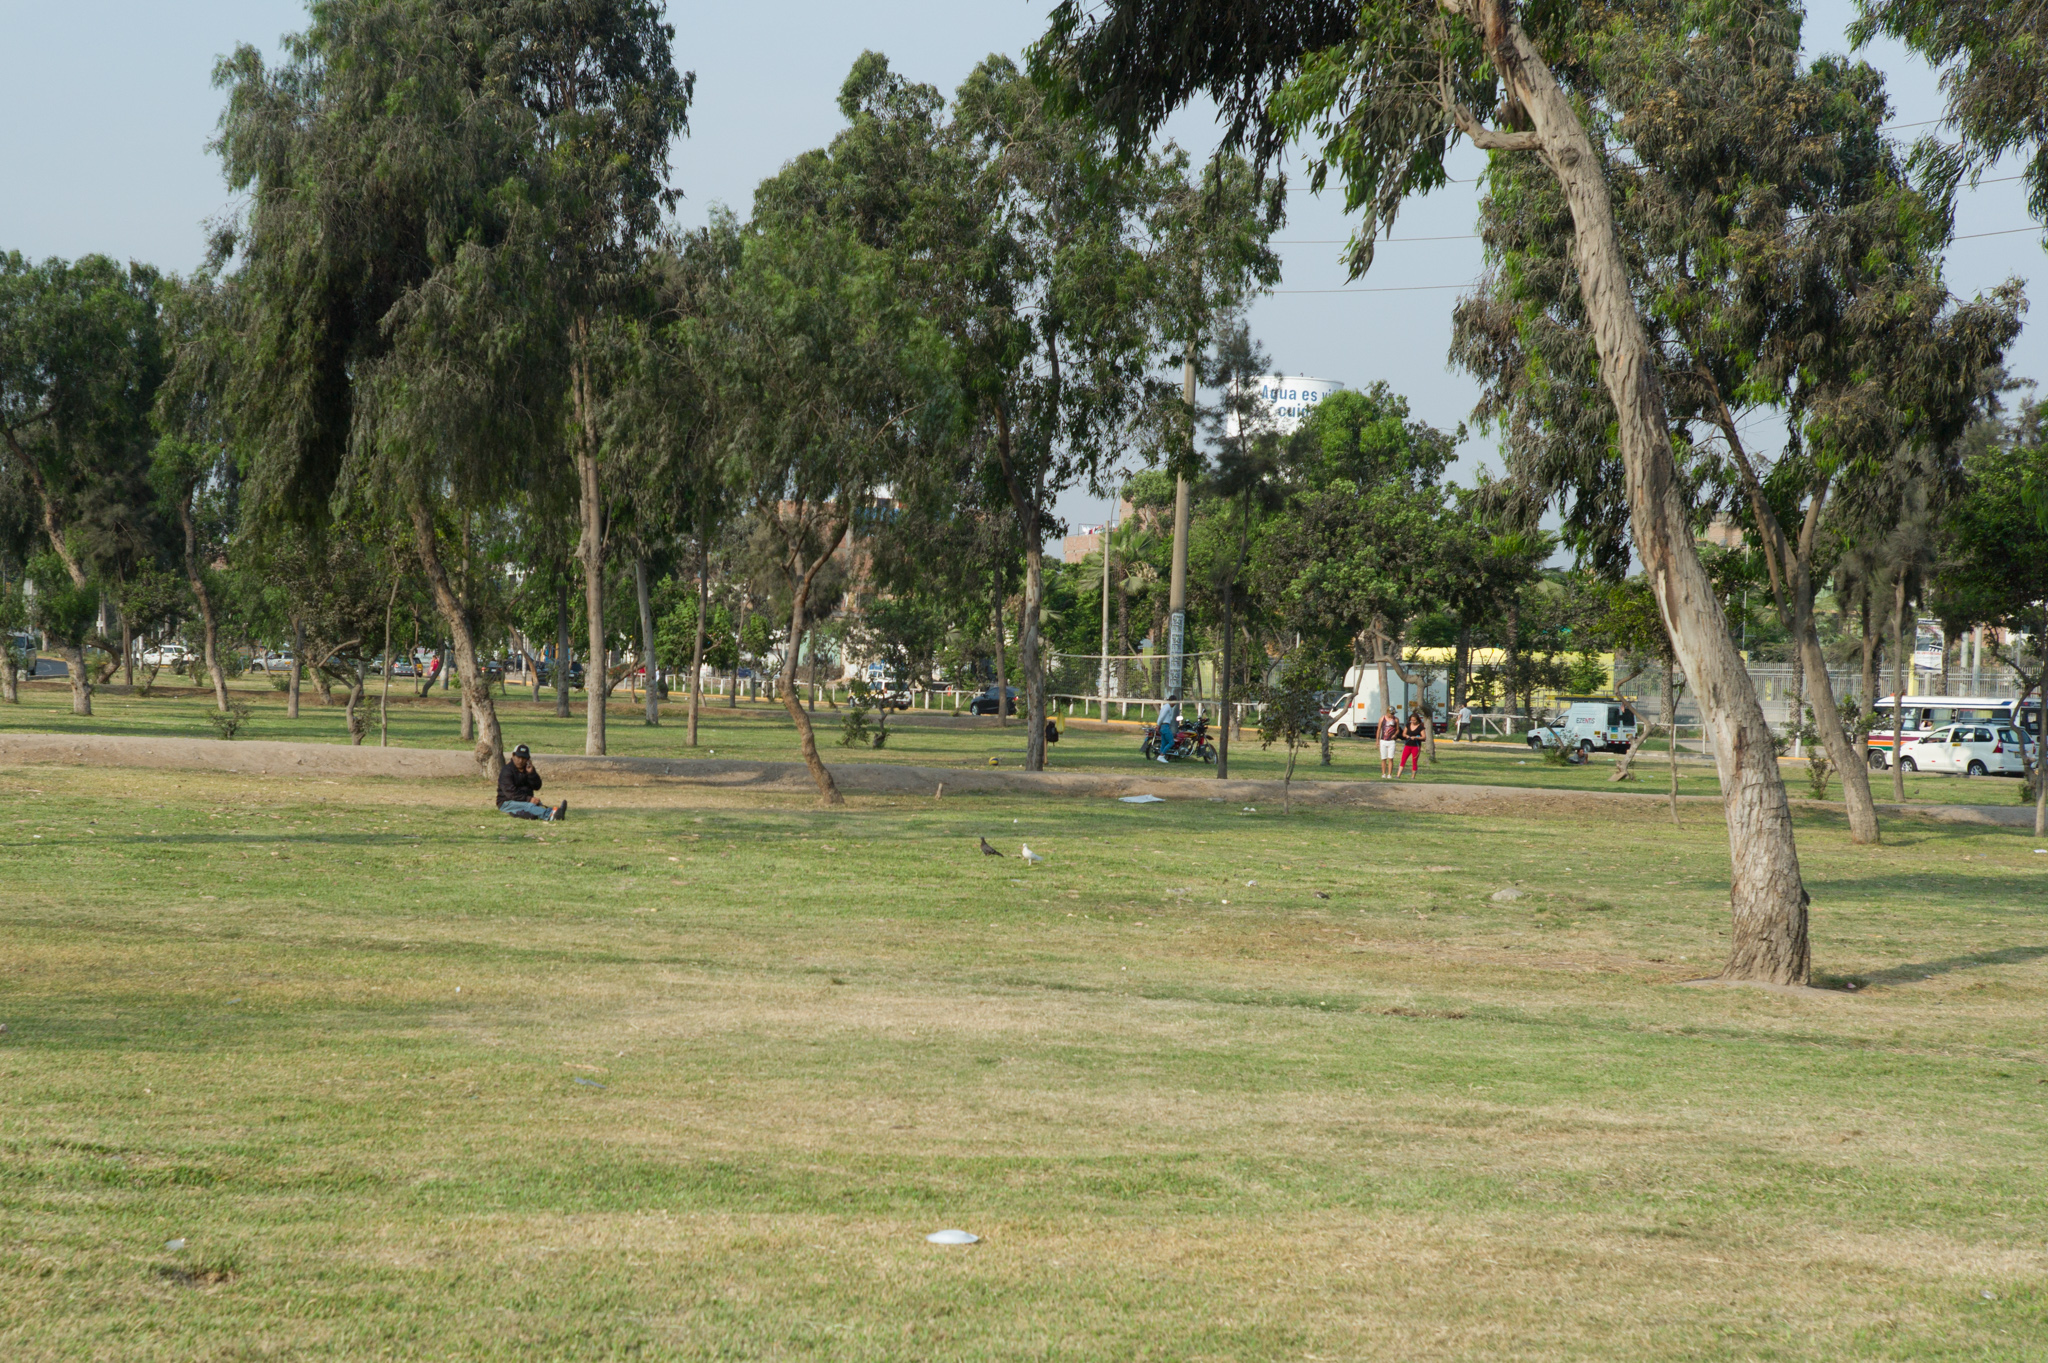 Green area between two lanes of Avenida Universitaria. These spaces are not policed, but large enough for people to use it as a park where people play sports, rest under trees. Unfortunately, here noise and pollution levels are very high.